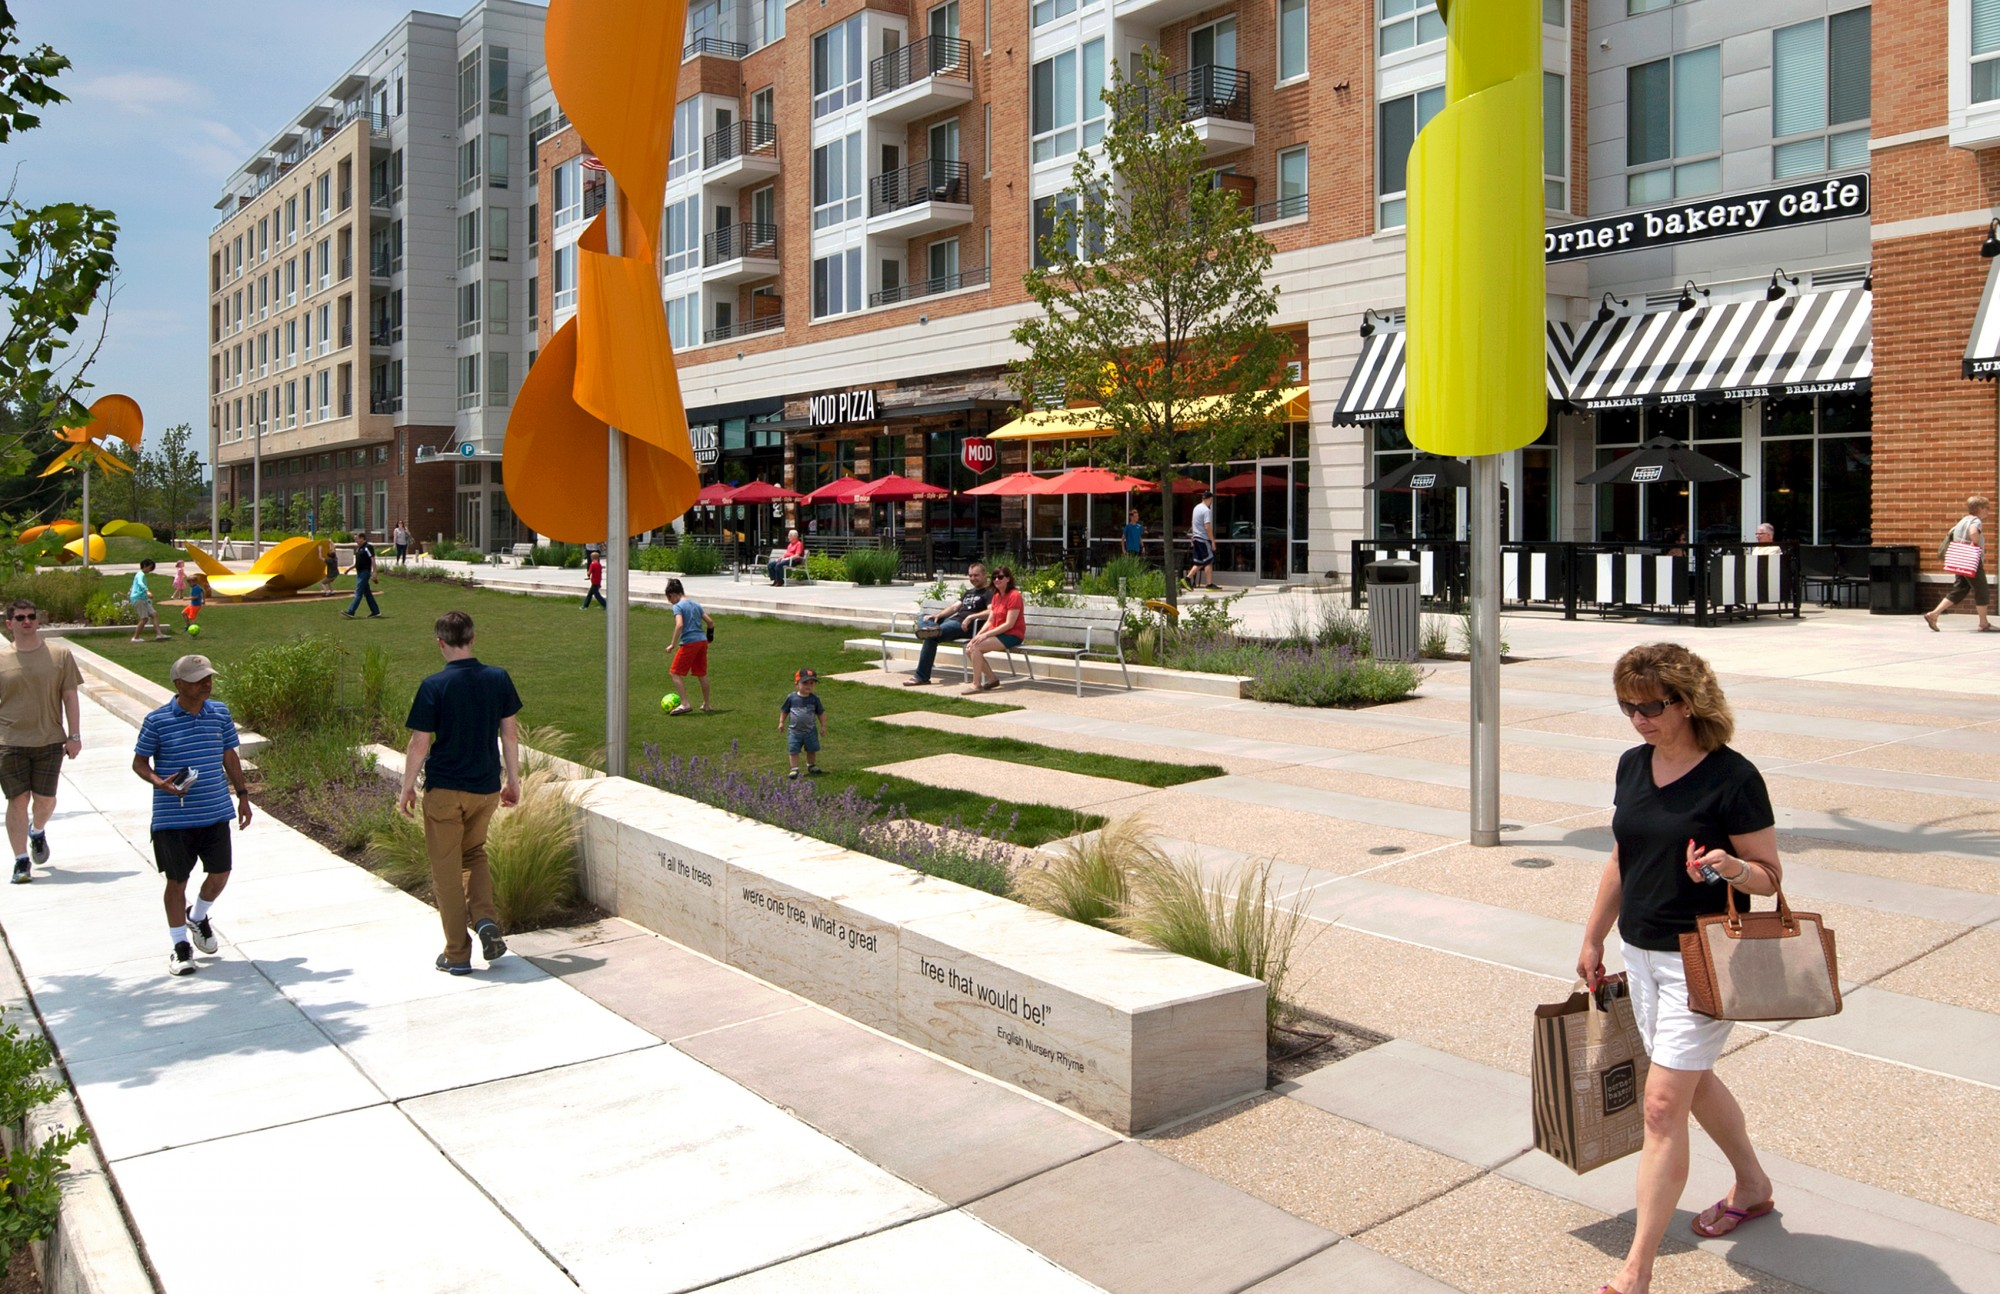 What You Need to Know About City Streetscapes and Gathering Spaces in Cities?